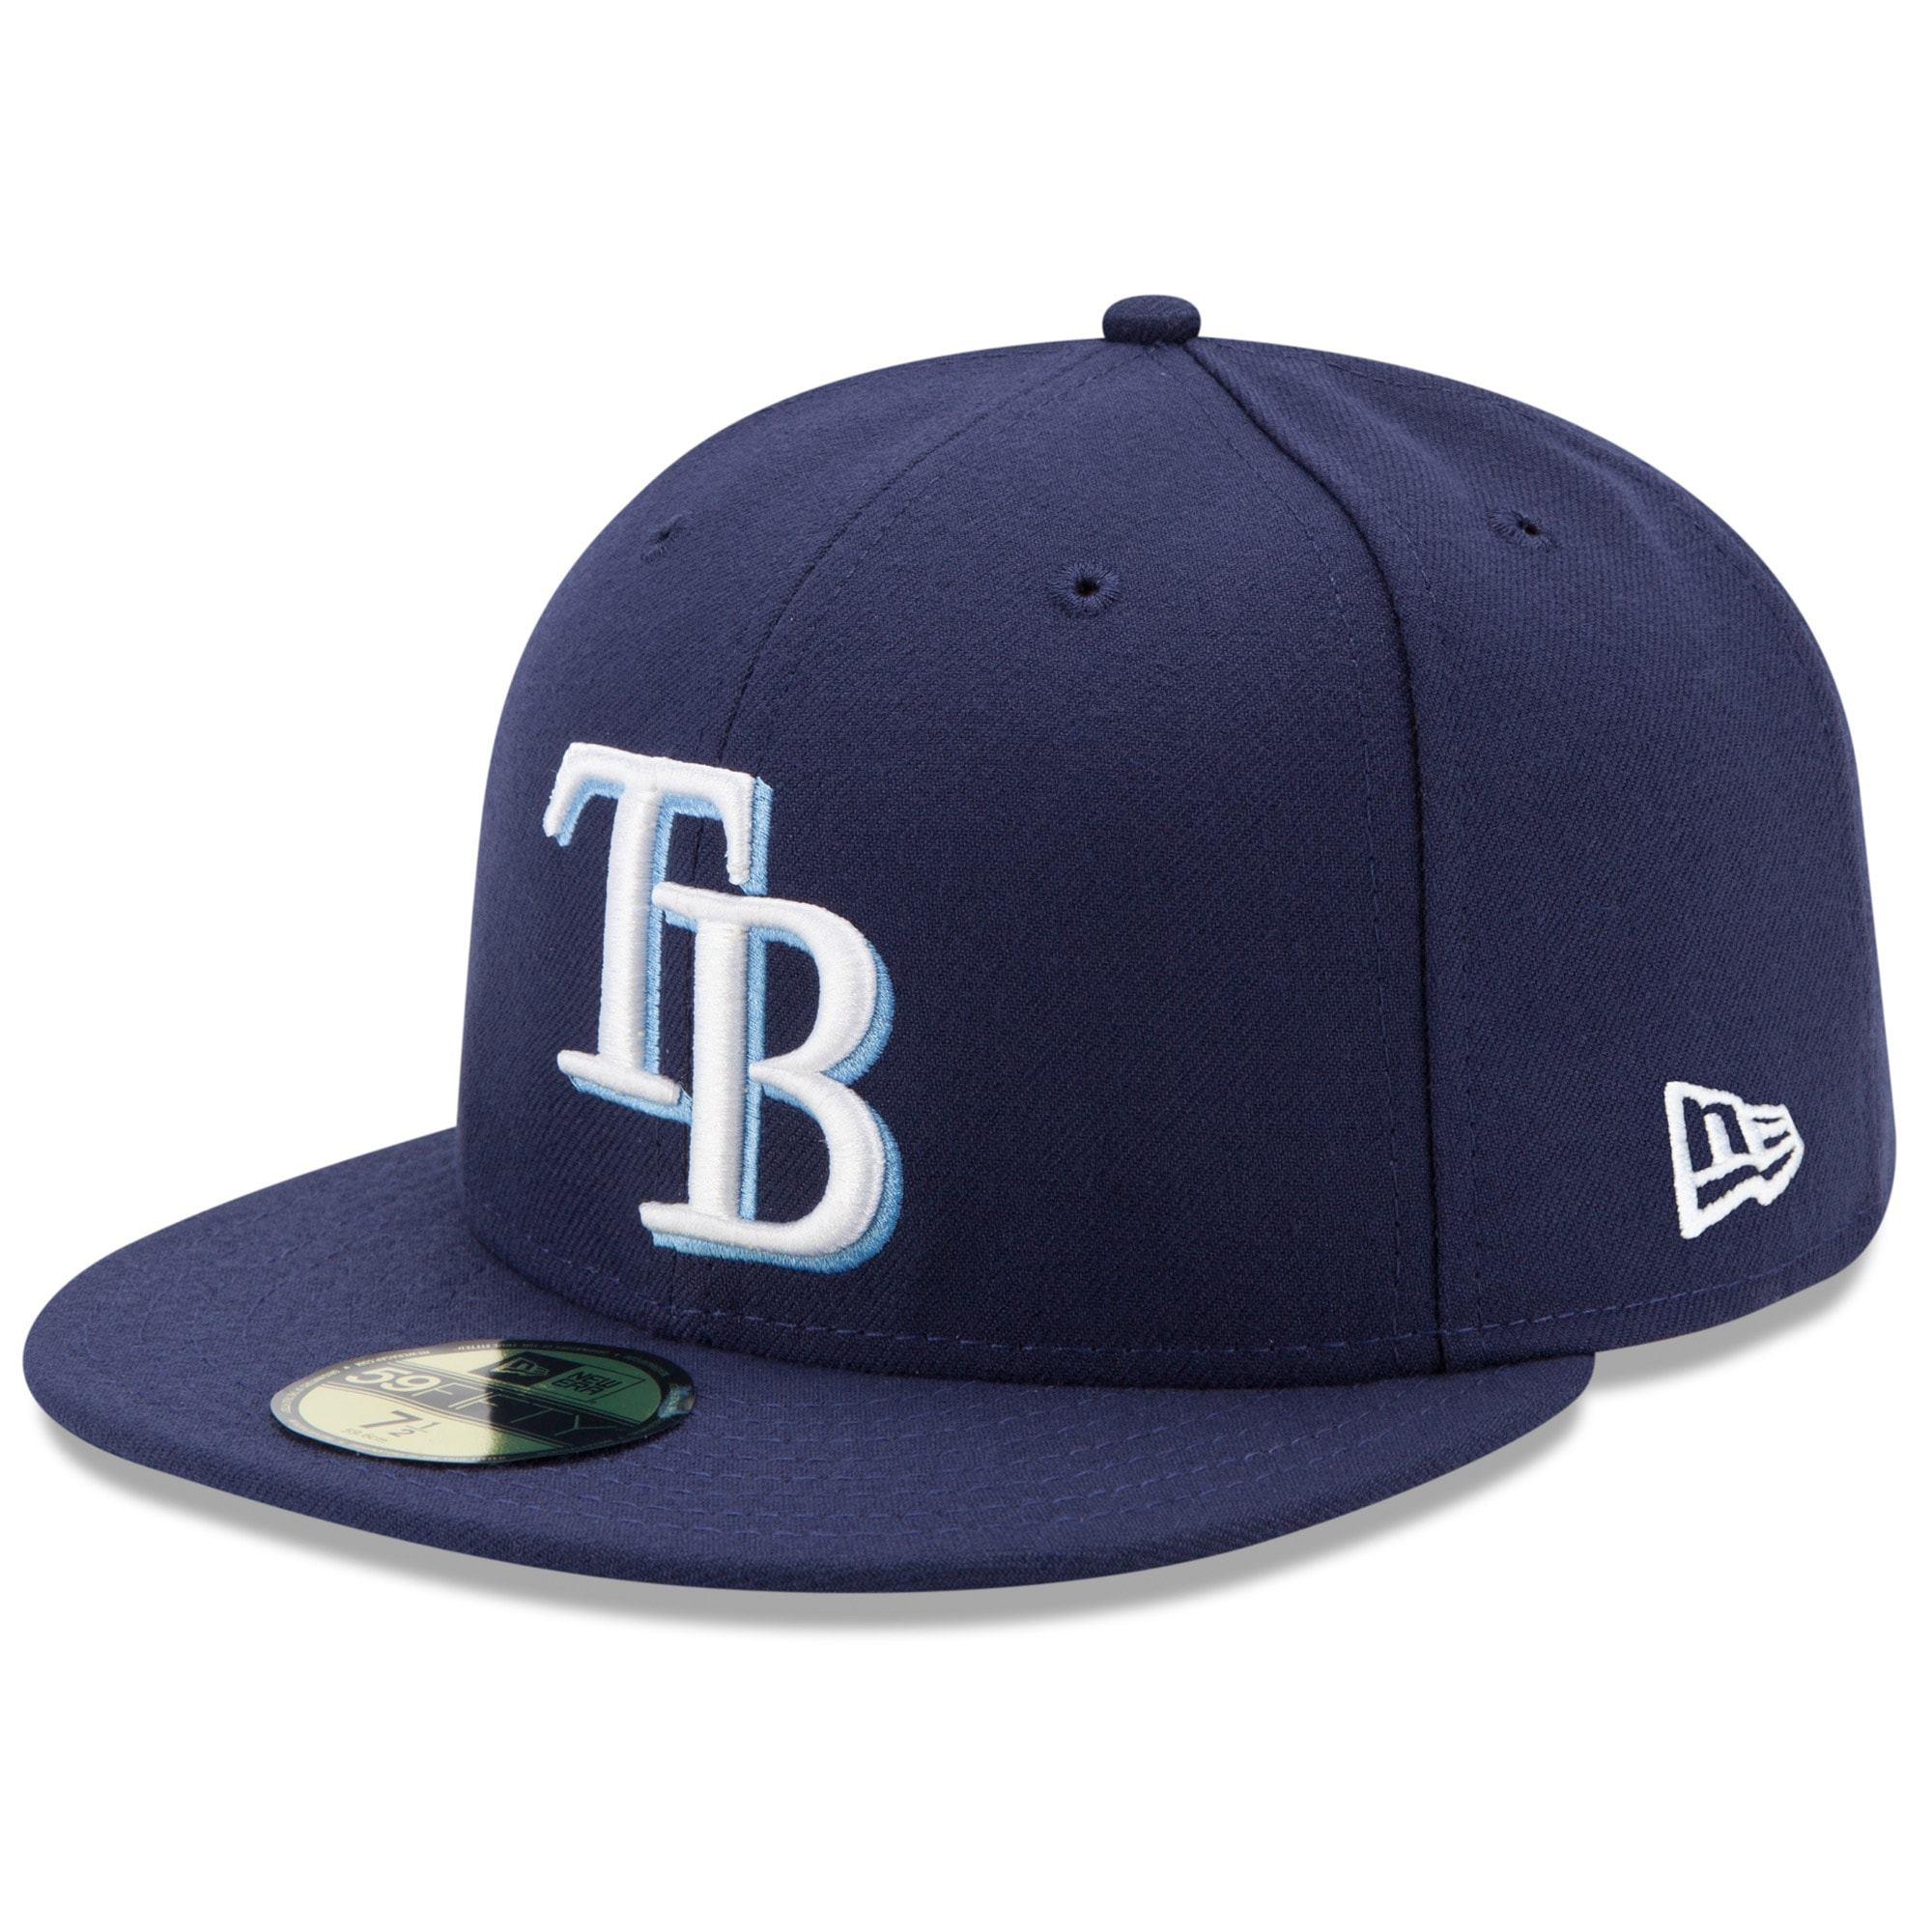 picture of Tampa Bay Rays New Era Game Authentic Collection On-Field 59FIFTY Fitted Hat - Navy